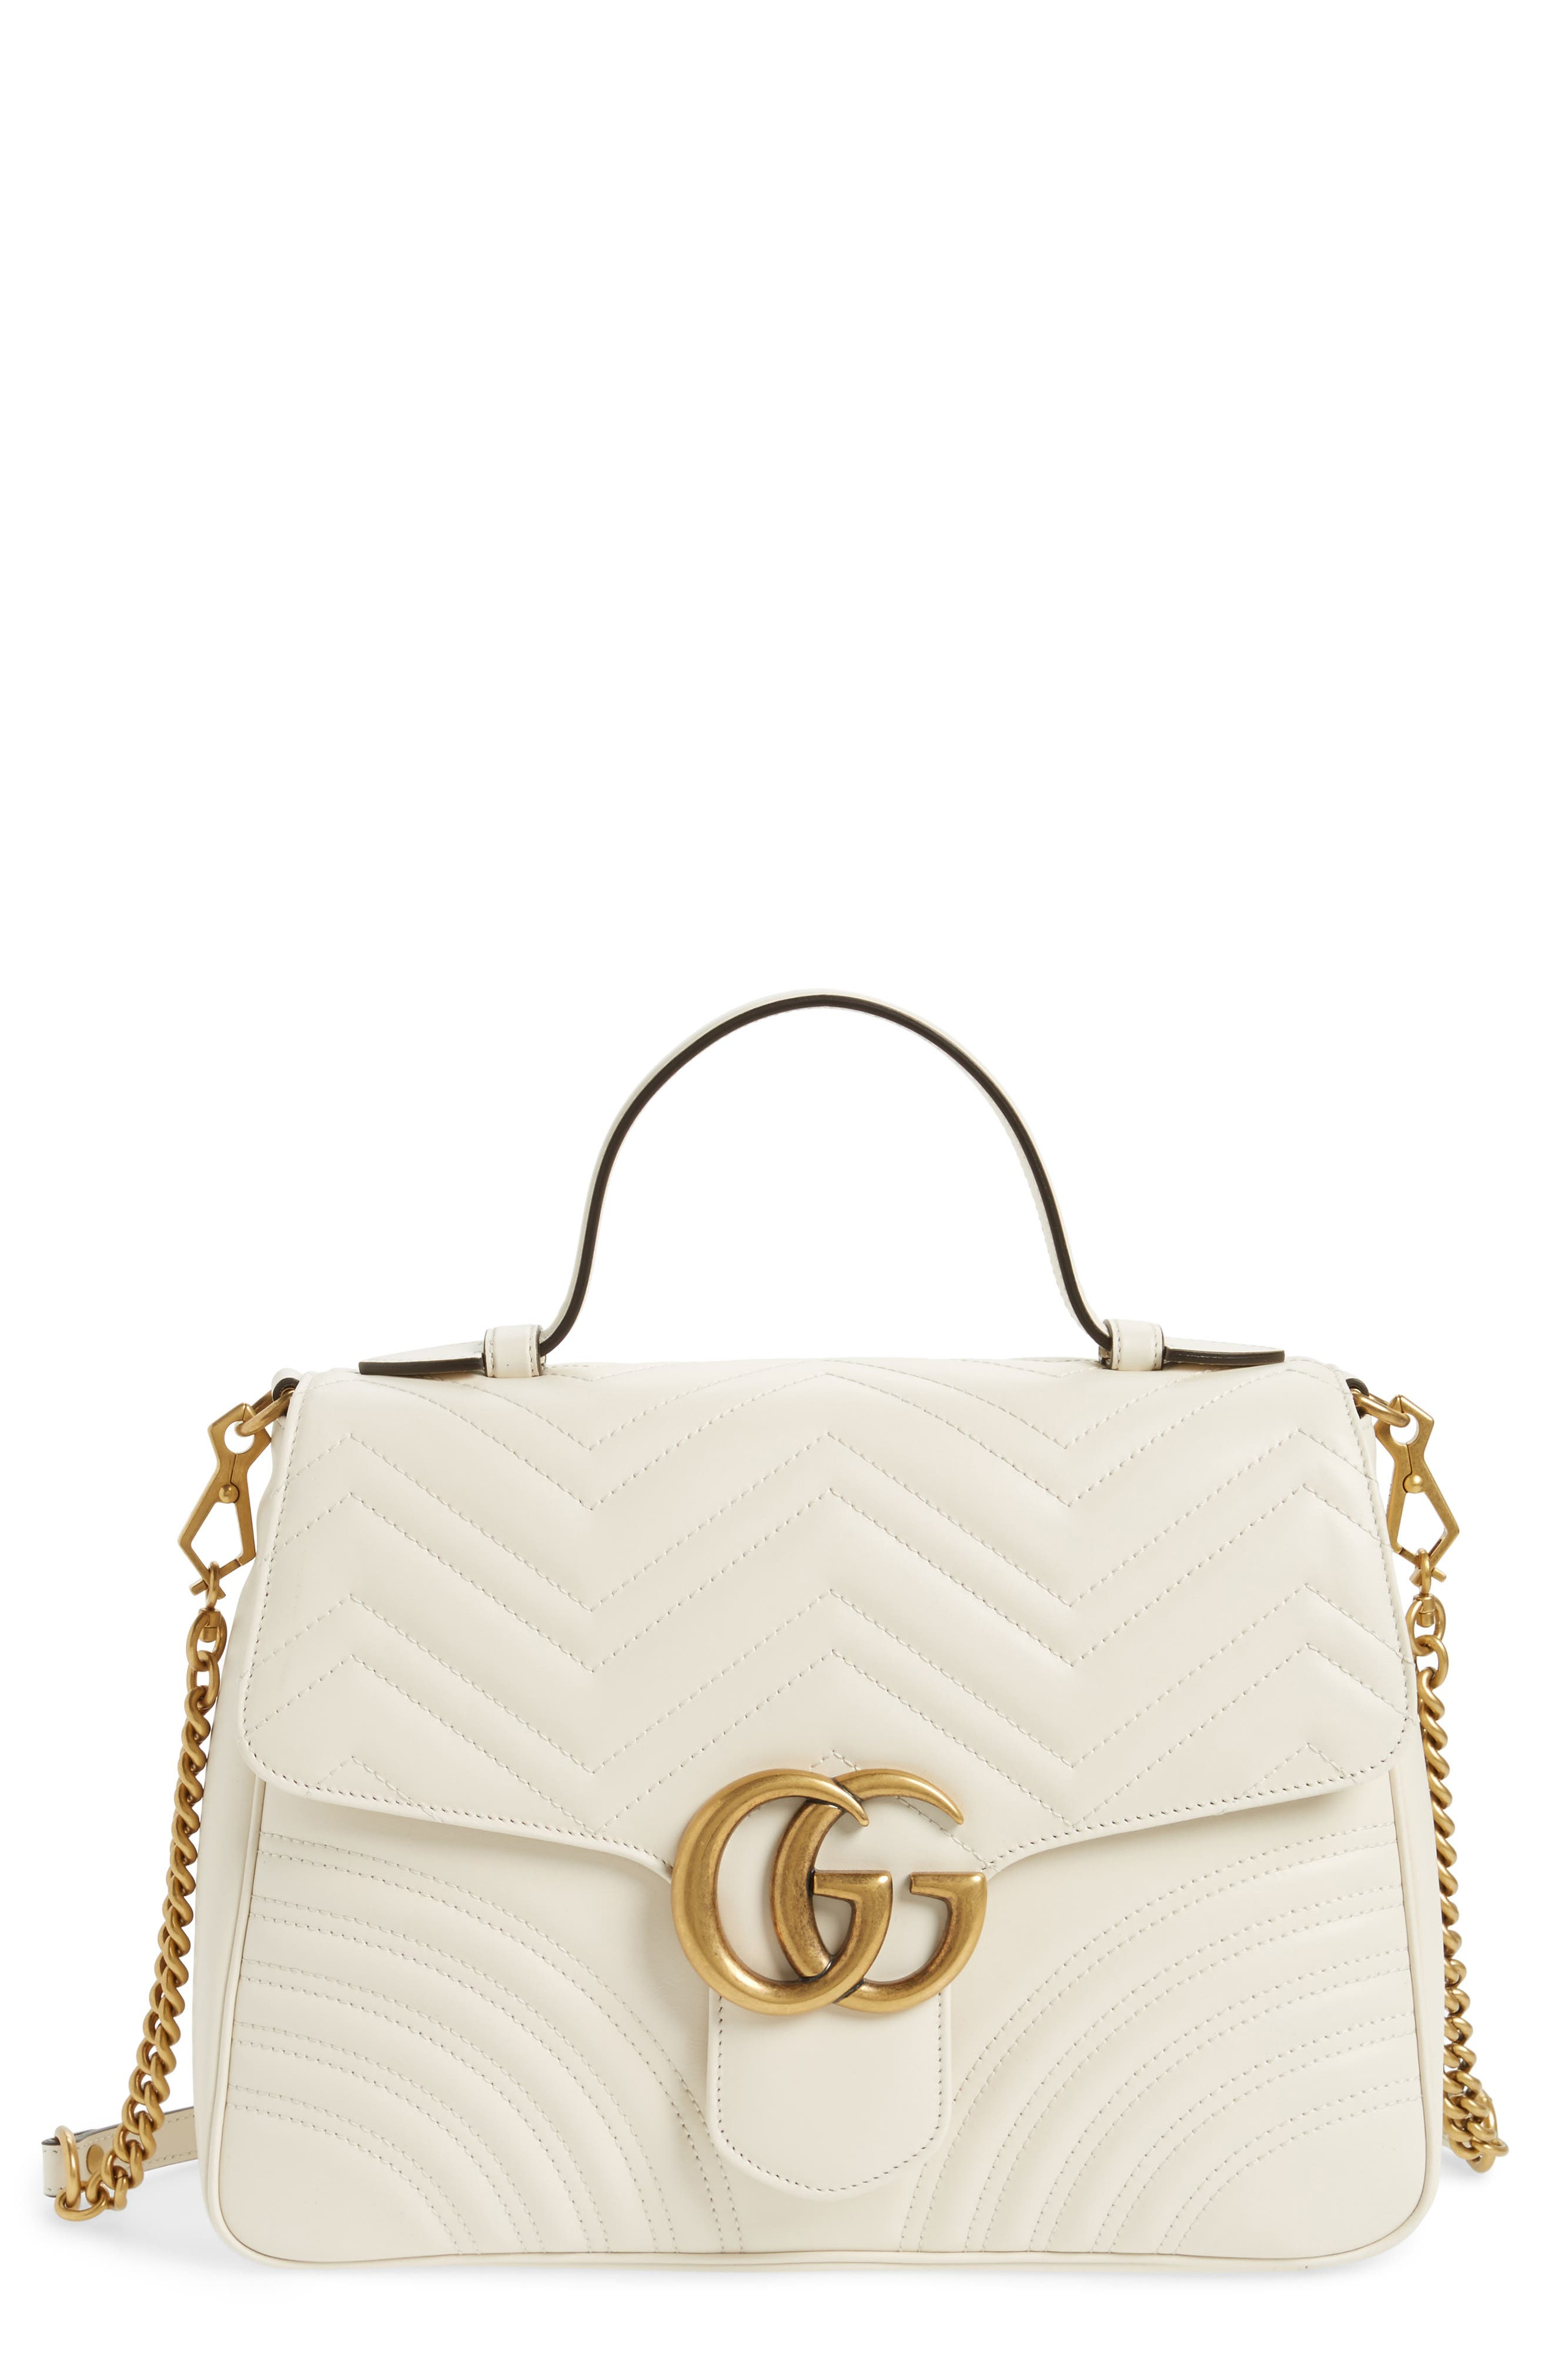 Gucci Medium GG Marmont 2.0 Matelassé Leather Top Handle Bag